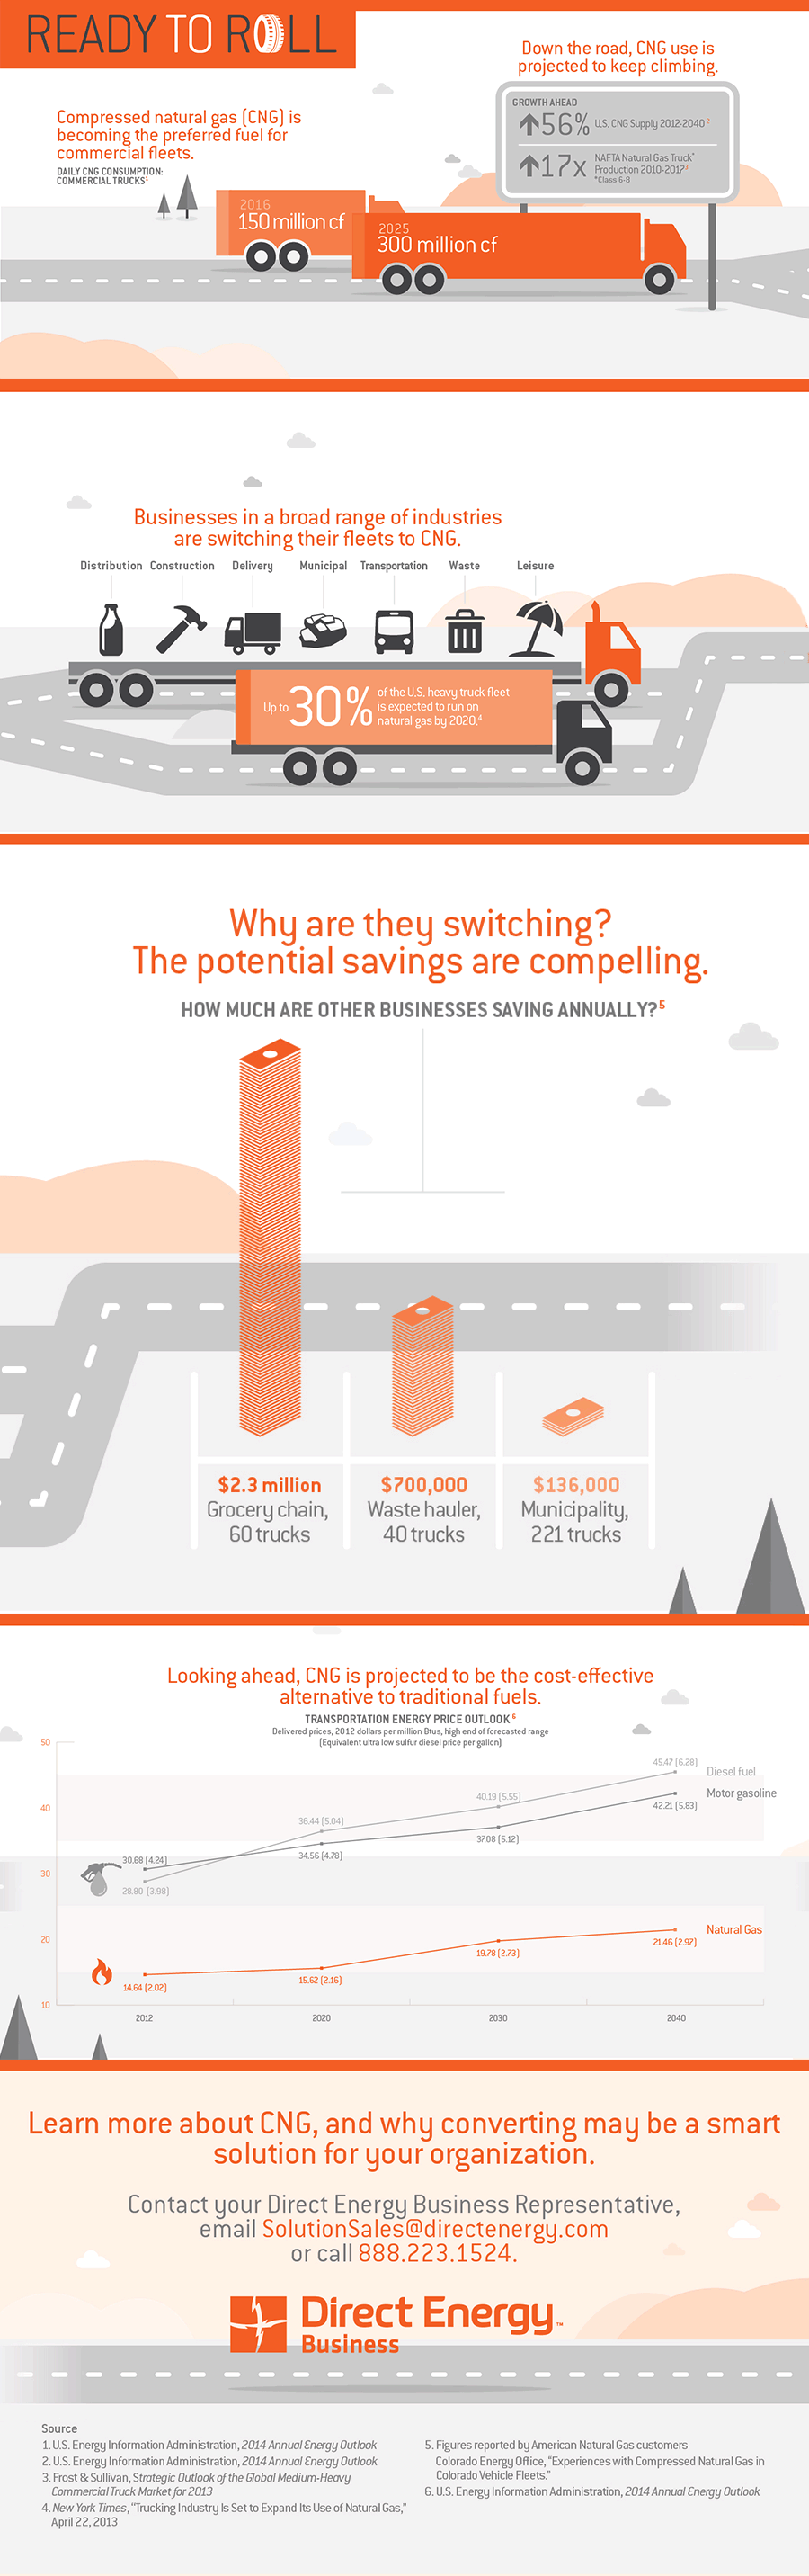 CNG is Becoming the Preferred Fuel for Commercial Fleets